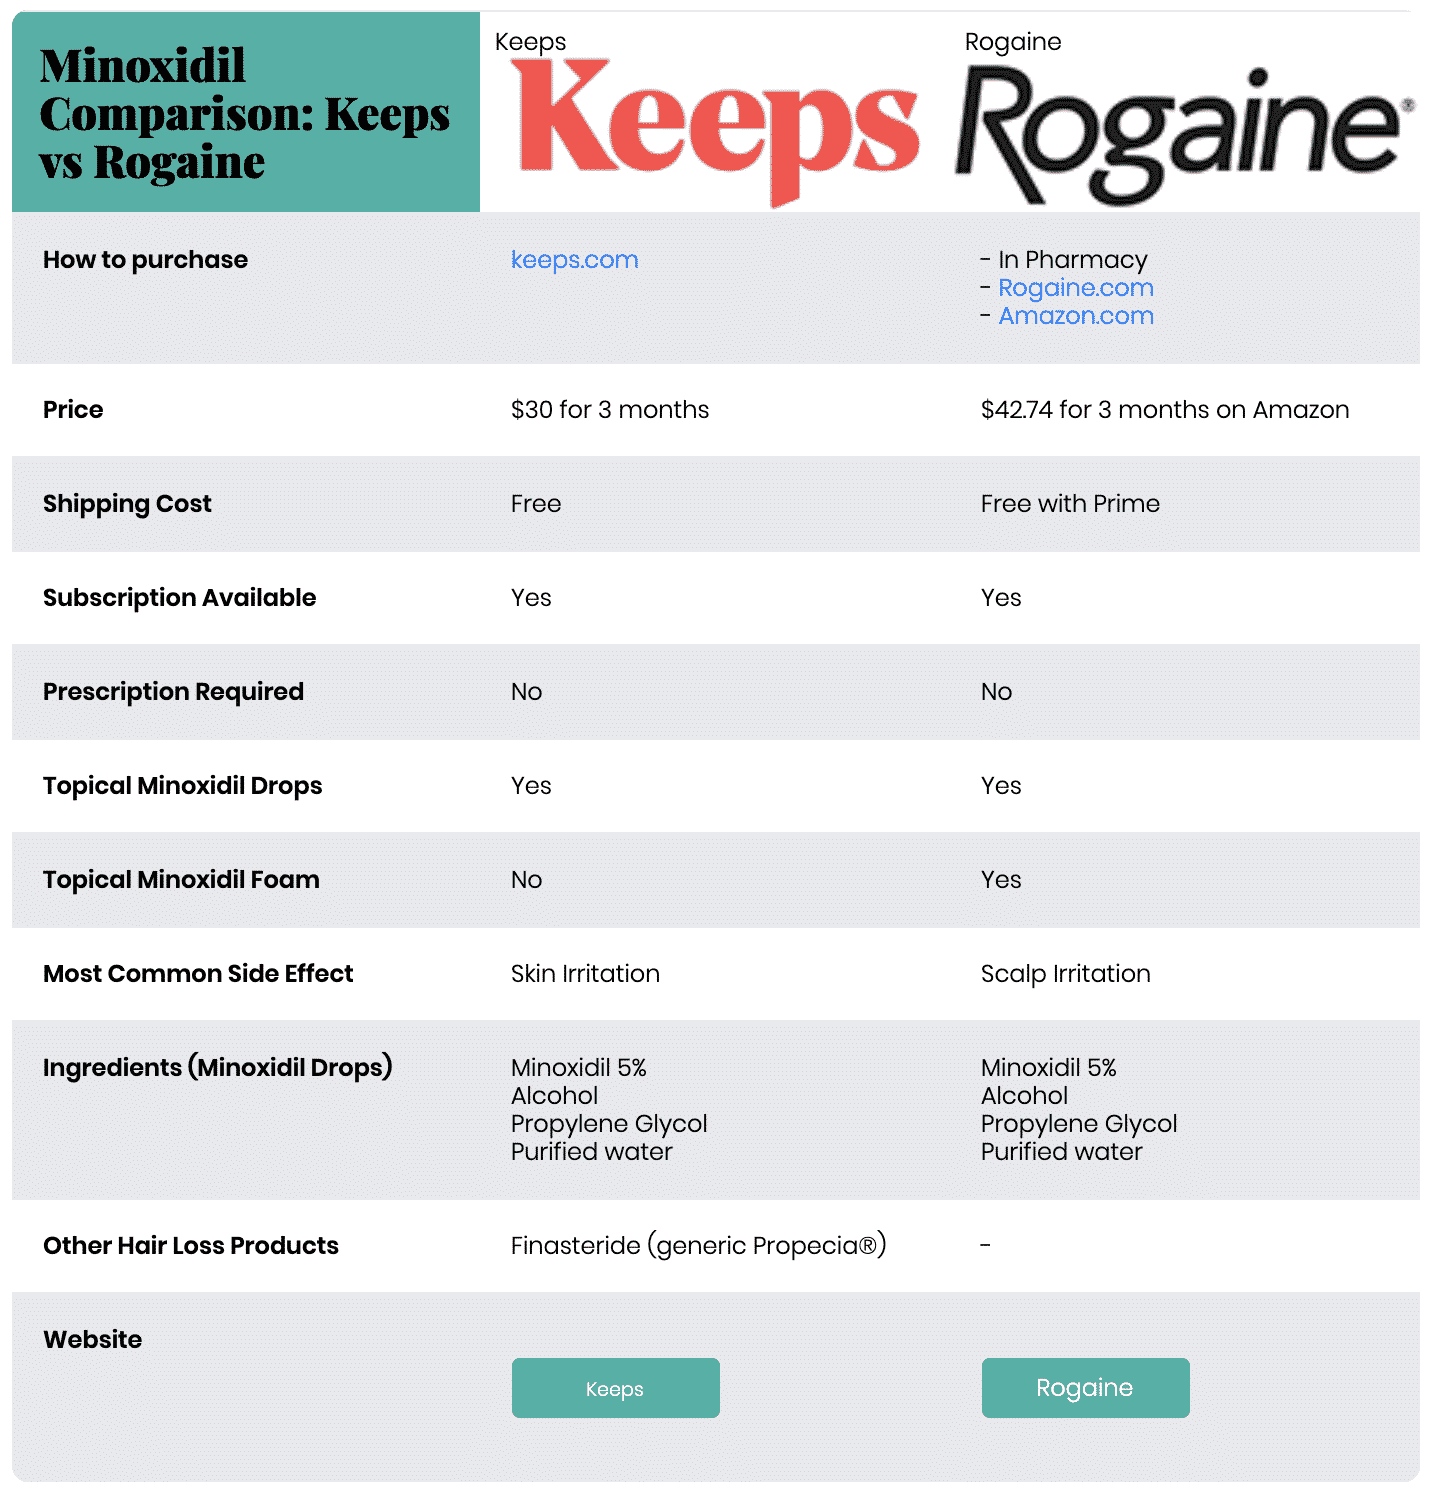 Rogaine Vs Keeps: Minoxidil Treatment Comparison Chart